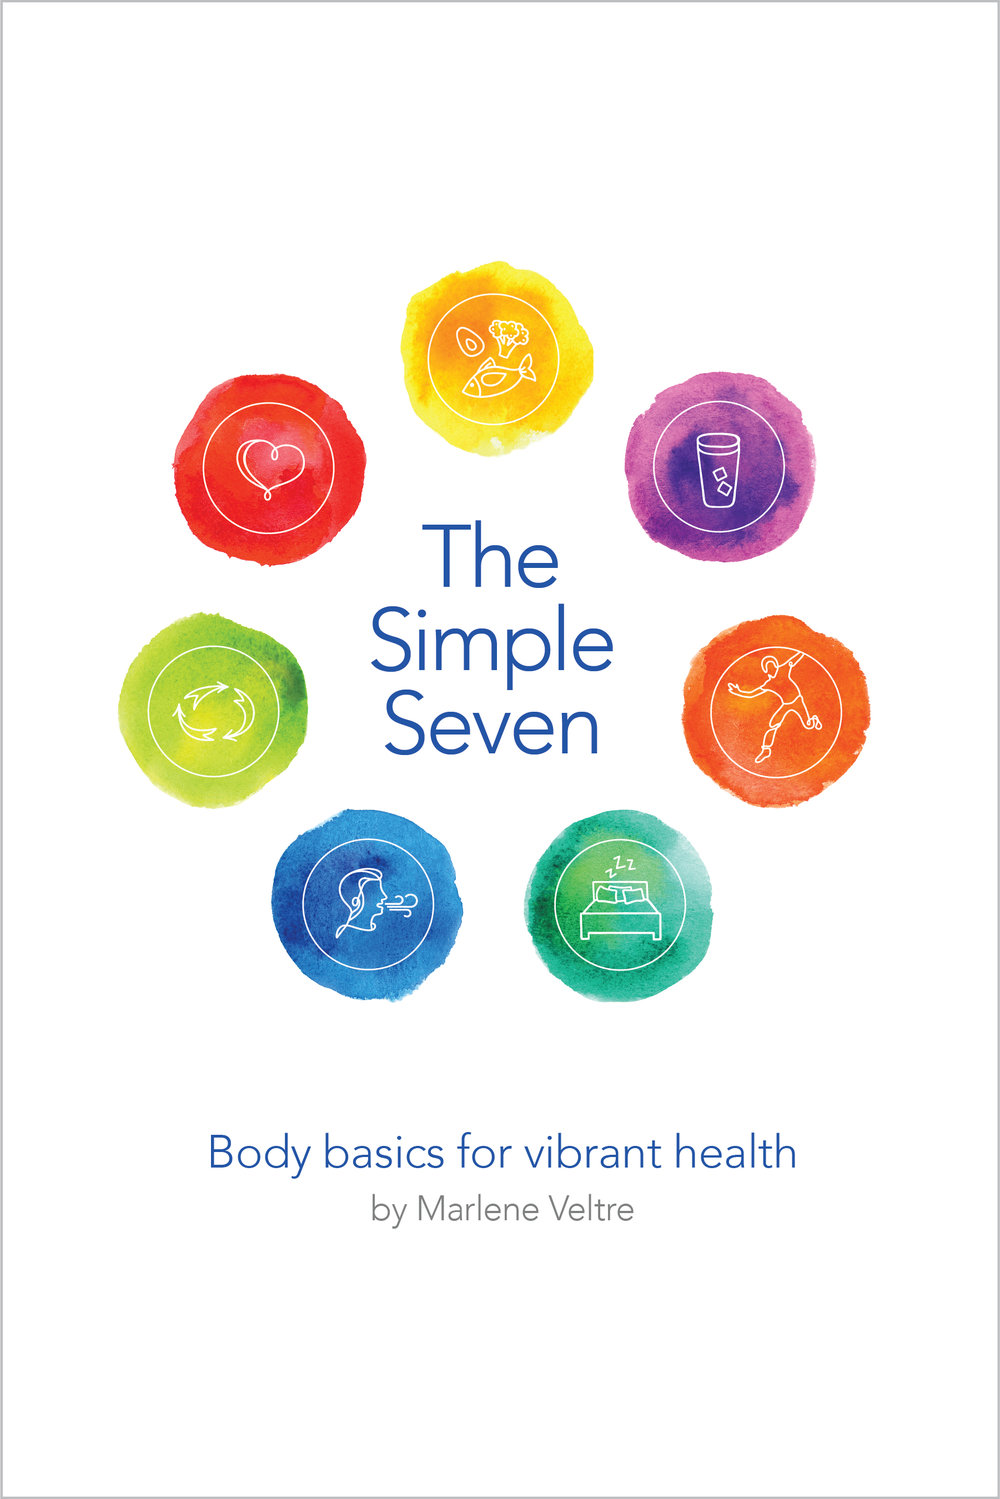 The Simple Seven Cover - eBook High Res.jpg